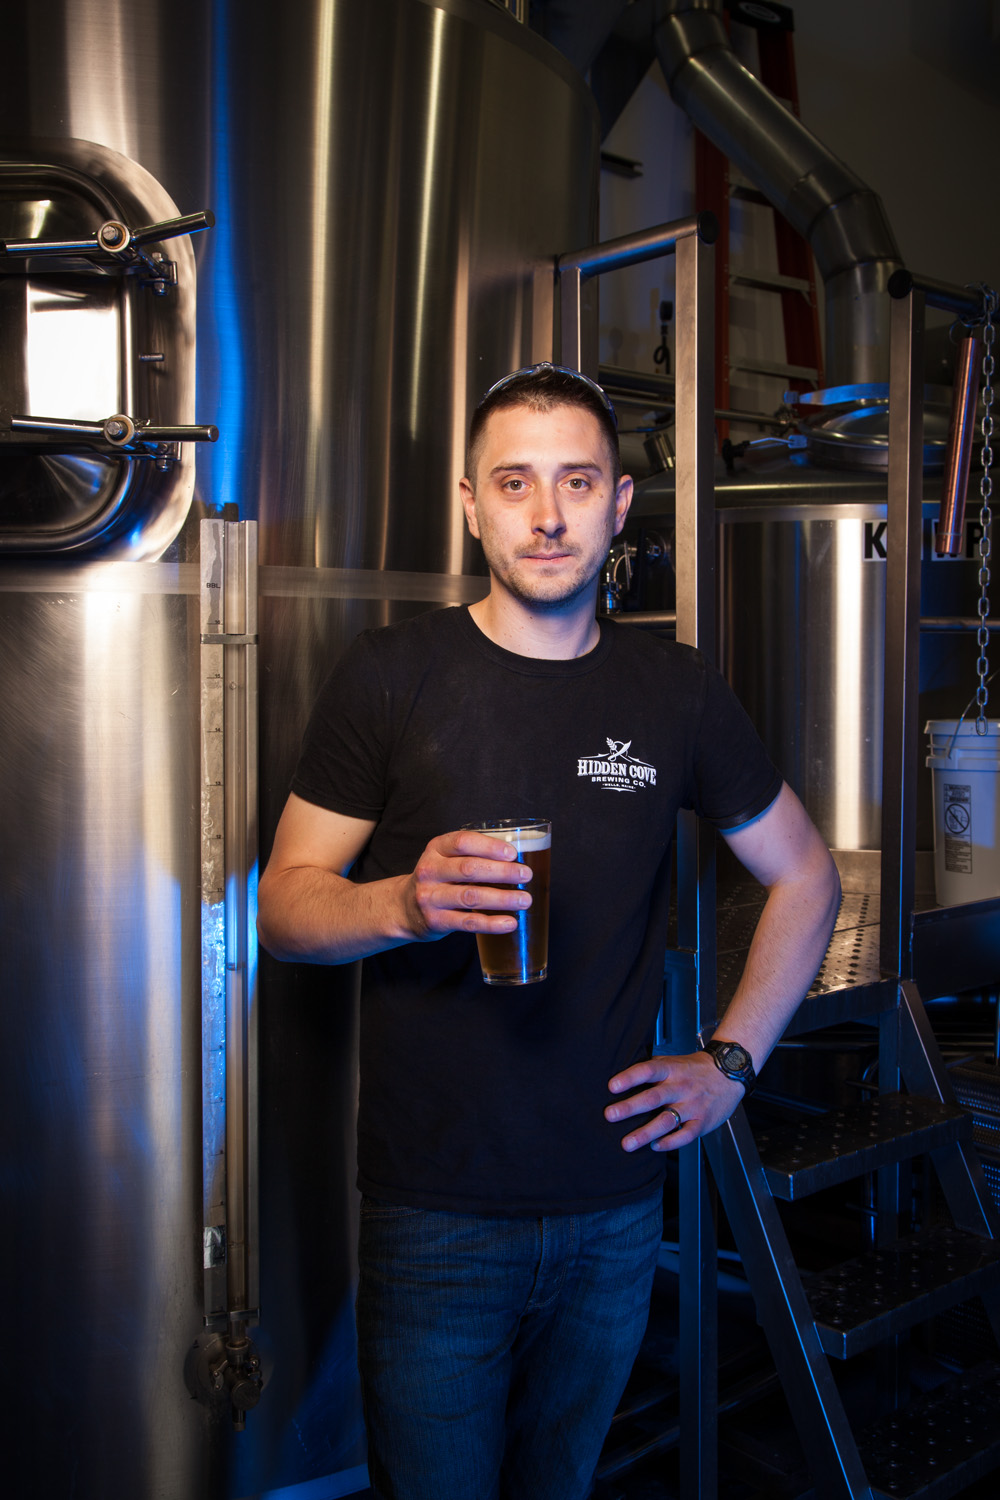 Kevin Glessing, Head Brewer Hidden Cove Brewery Wells, ME Established in 2013